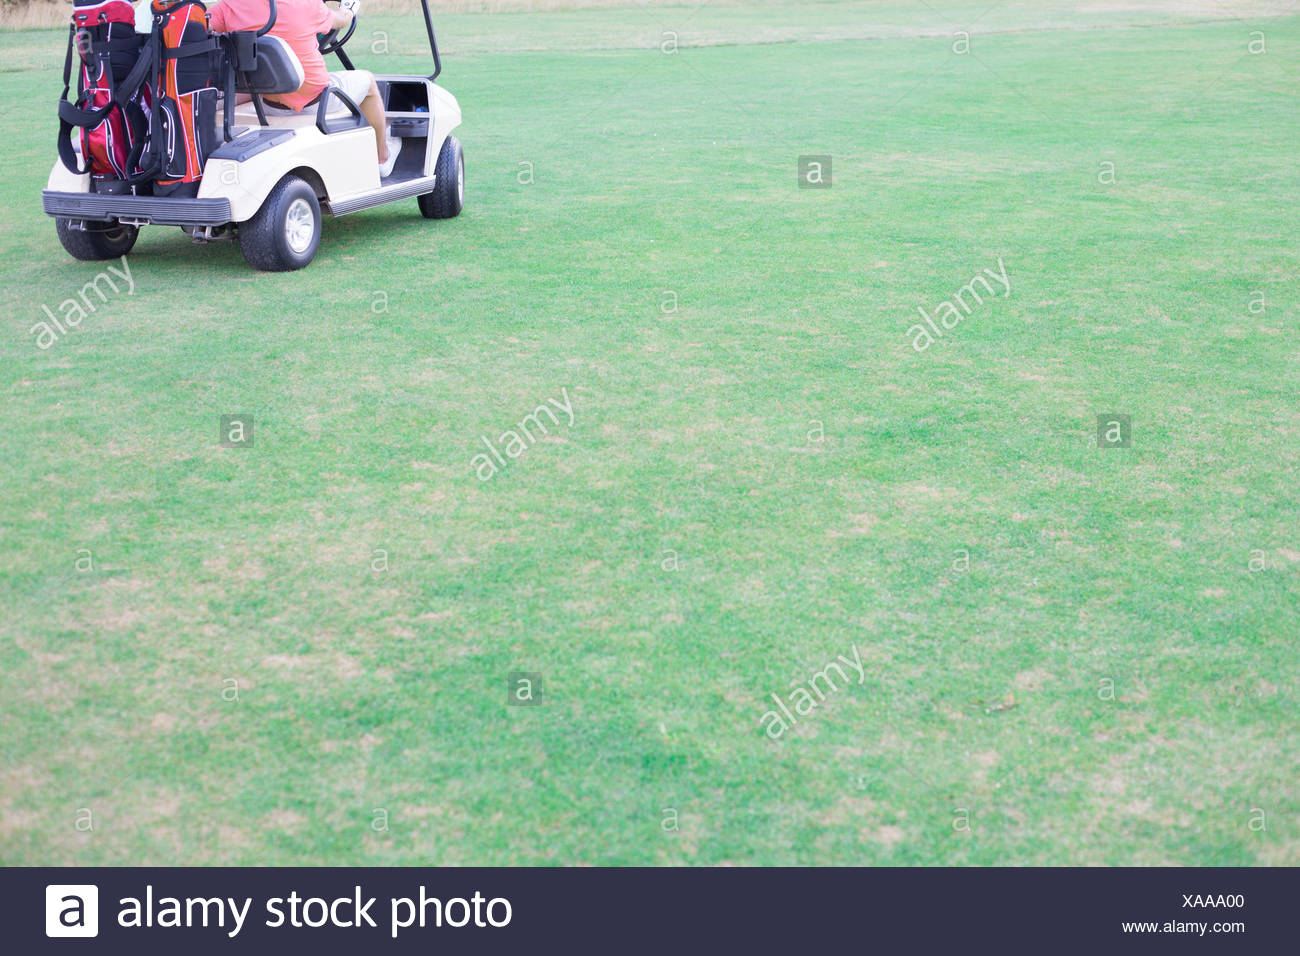 Low section of middle-aged man driving golf cart Stock Photo